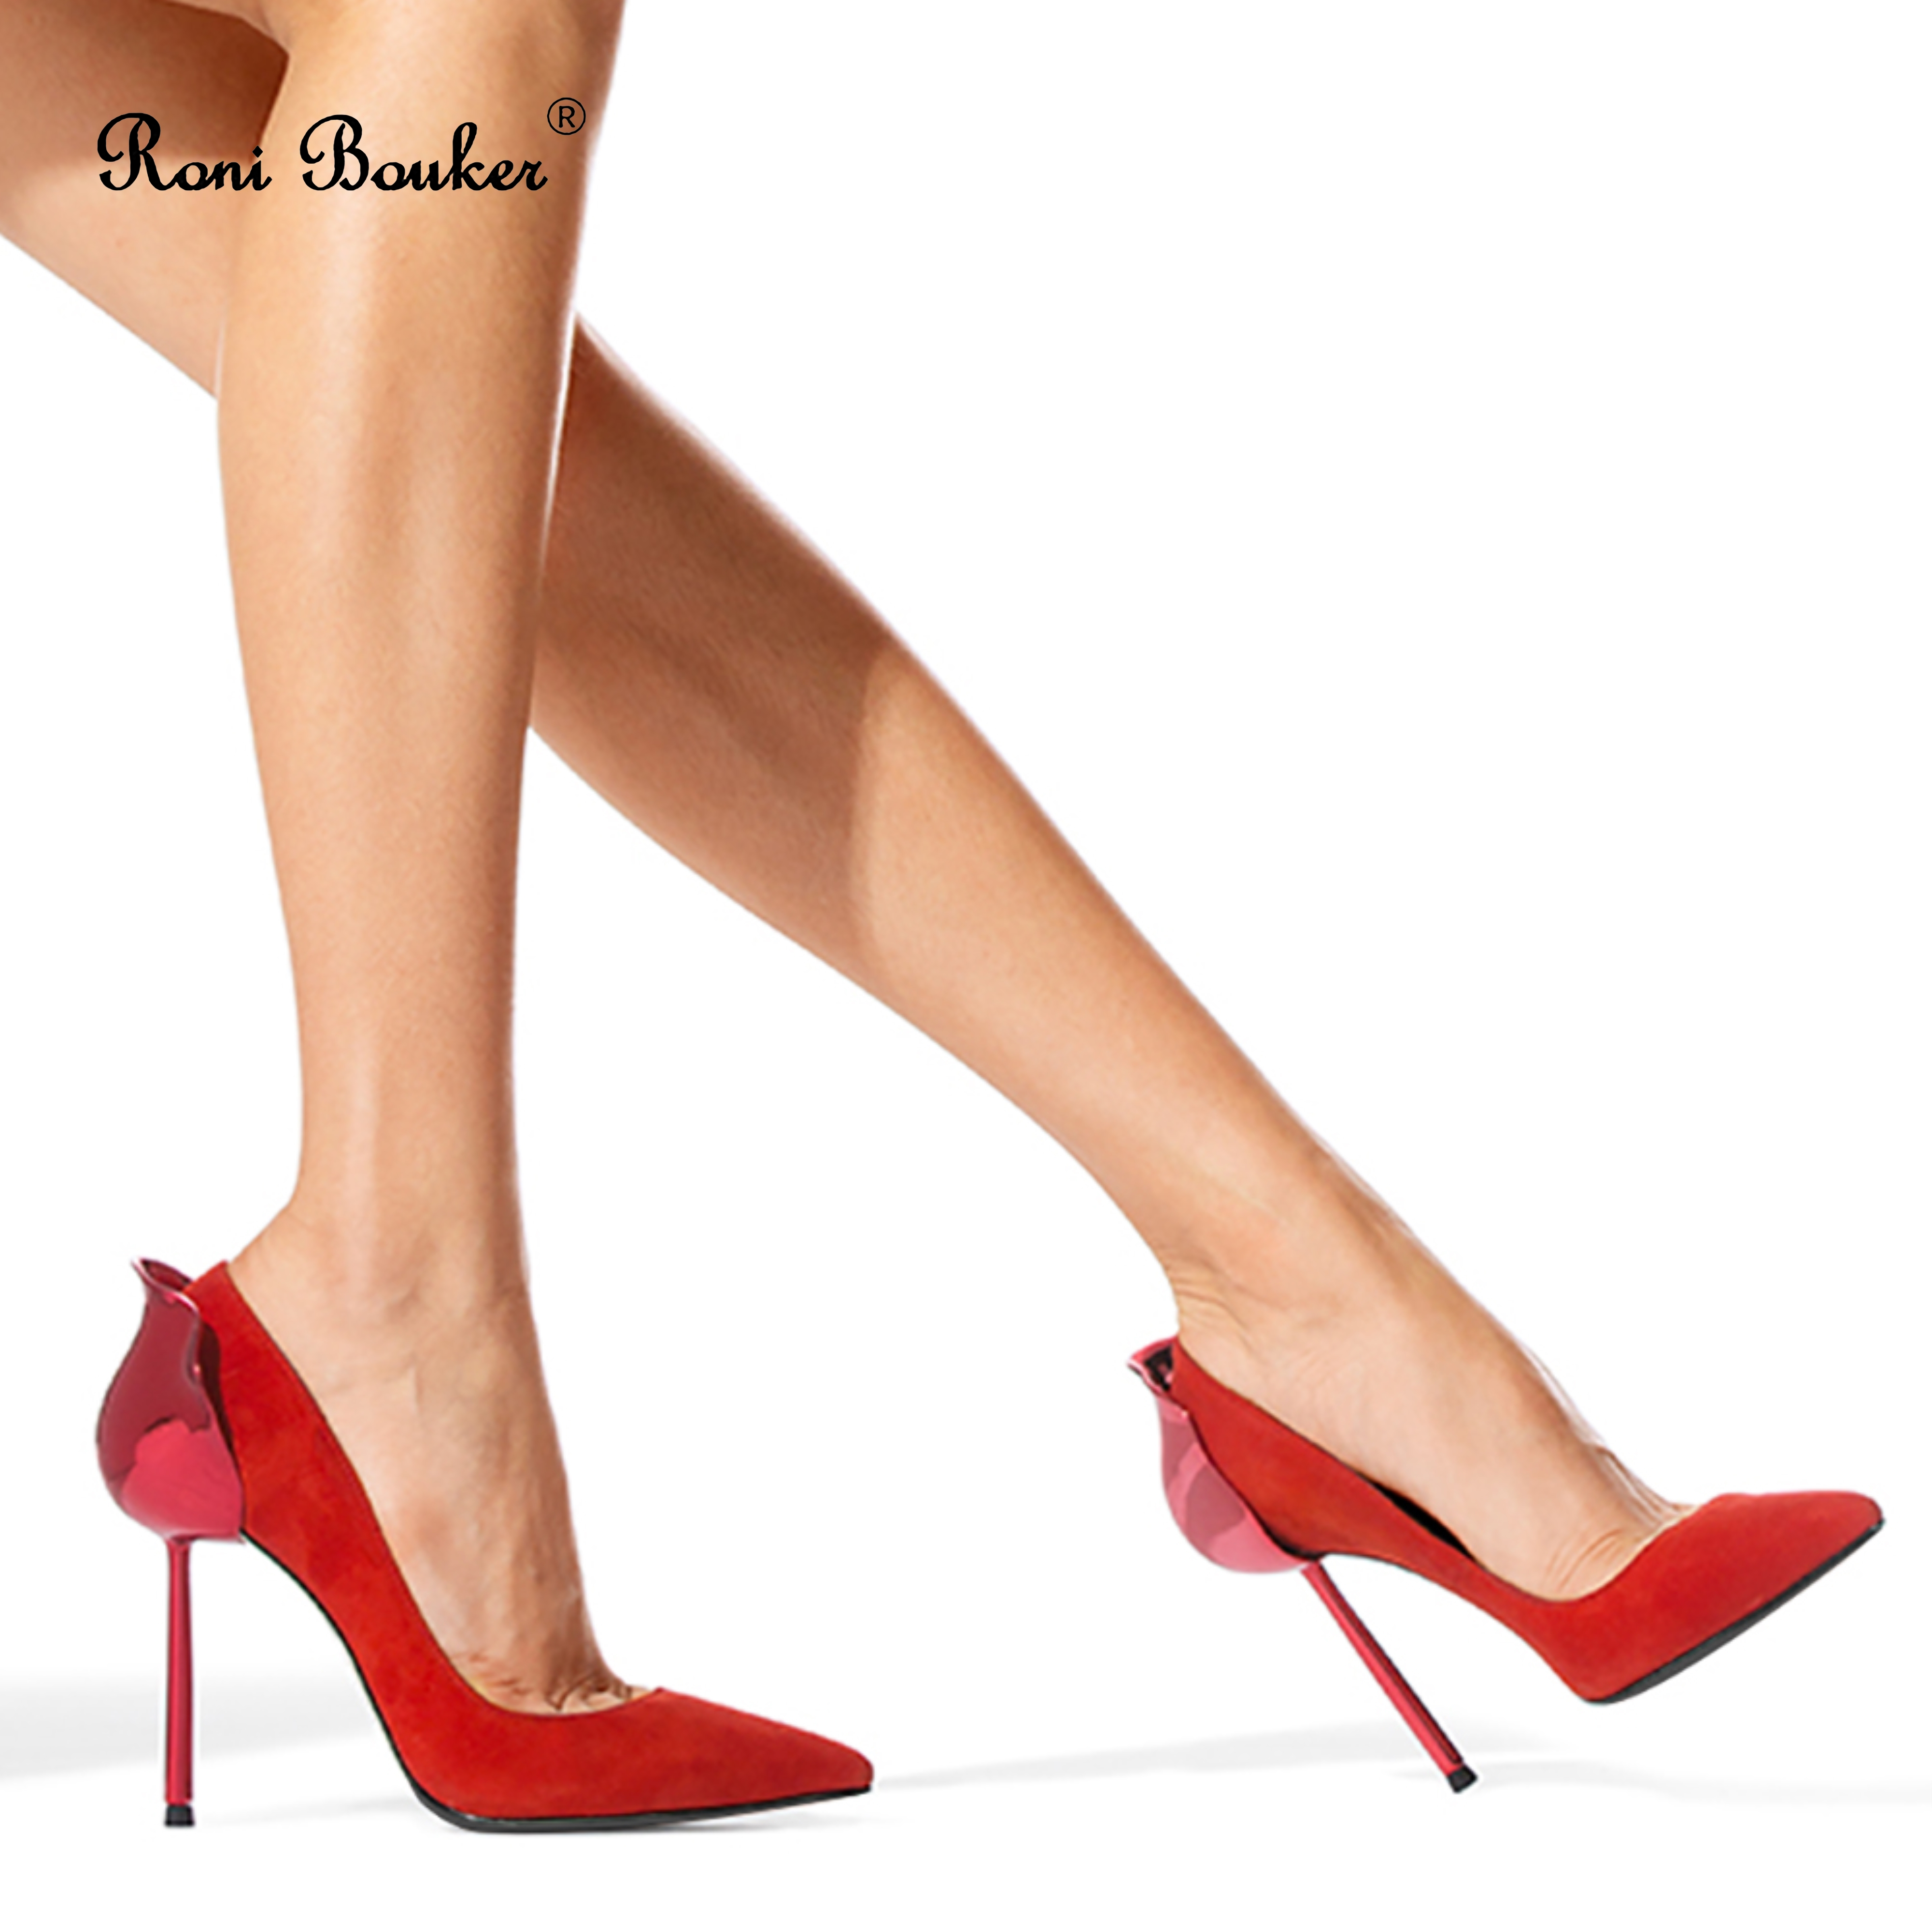 Roni Bouker Women Suede Leather Wedding Shoes Woman Electroplate High Heels Female Fashion Design Pumps Handmade Black RedRoni Bouker Women Suede Leather Wedding Shoes Woman Electroplate High Heels Female Fashion Design Pumps Handmade Black Red